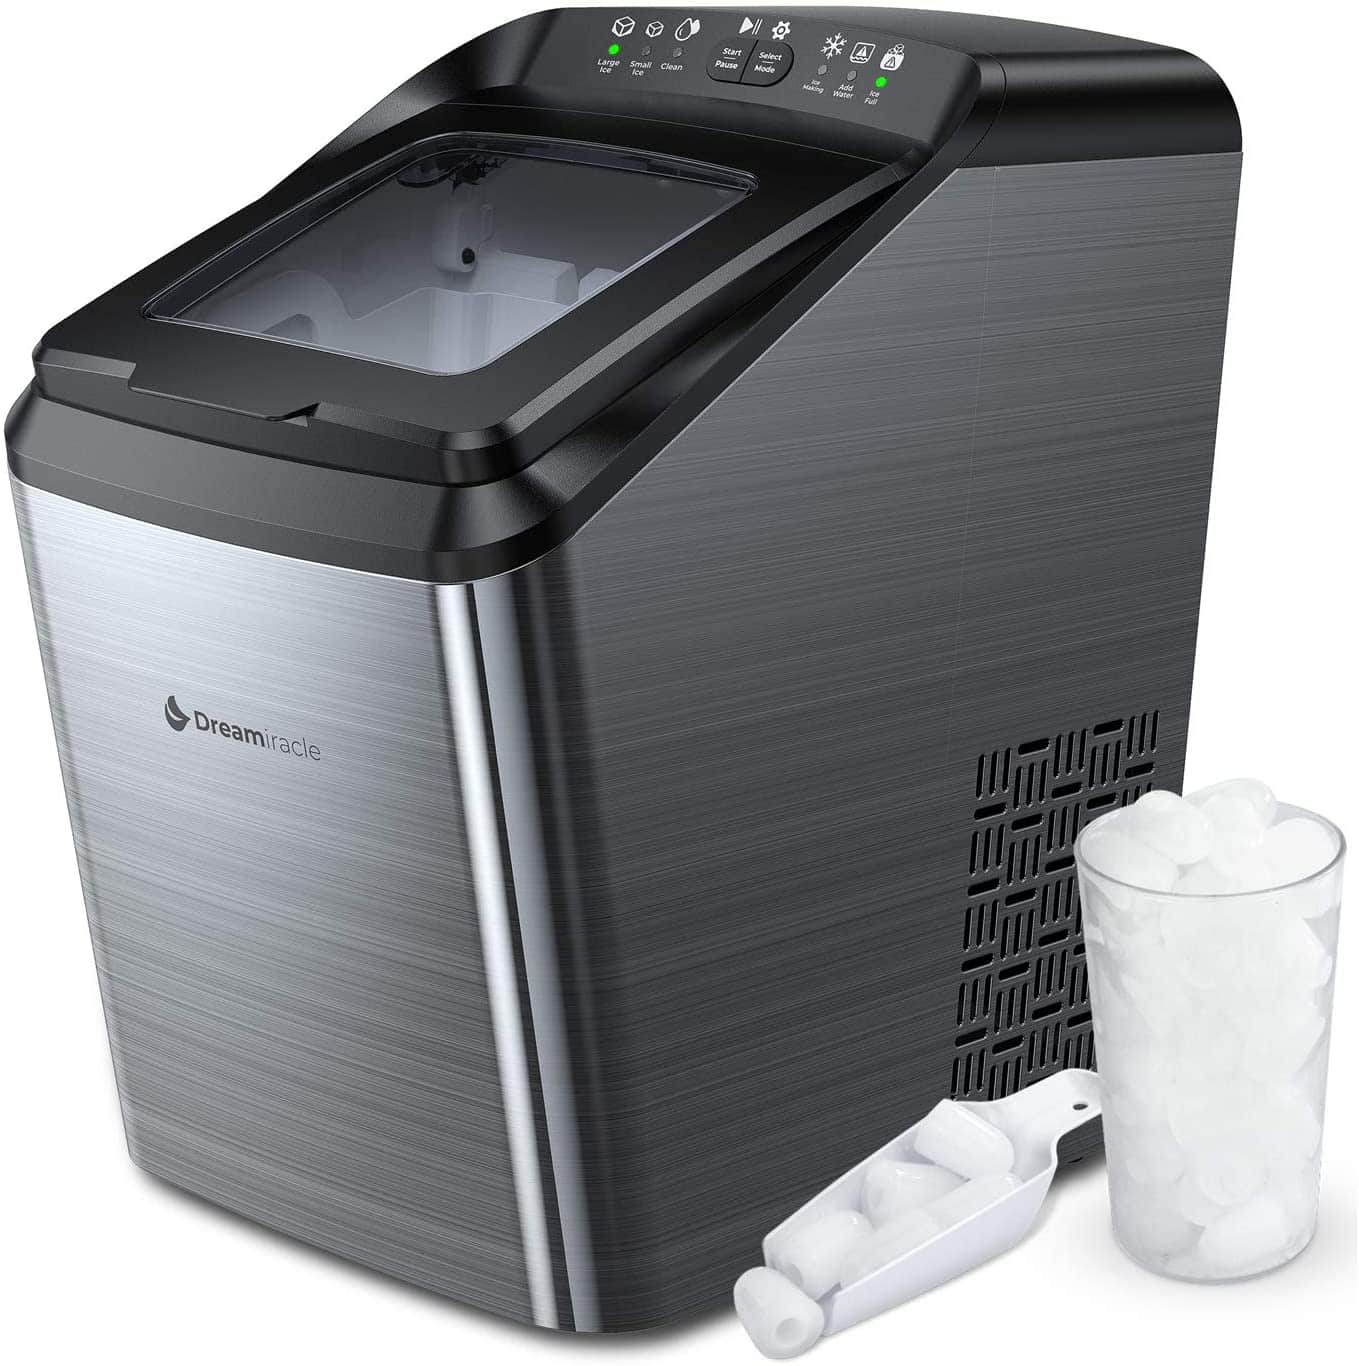 Dreamiracle Ice Maker Machine for Countertop